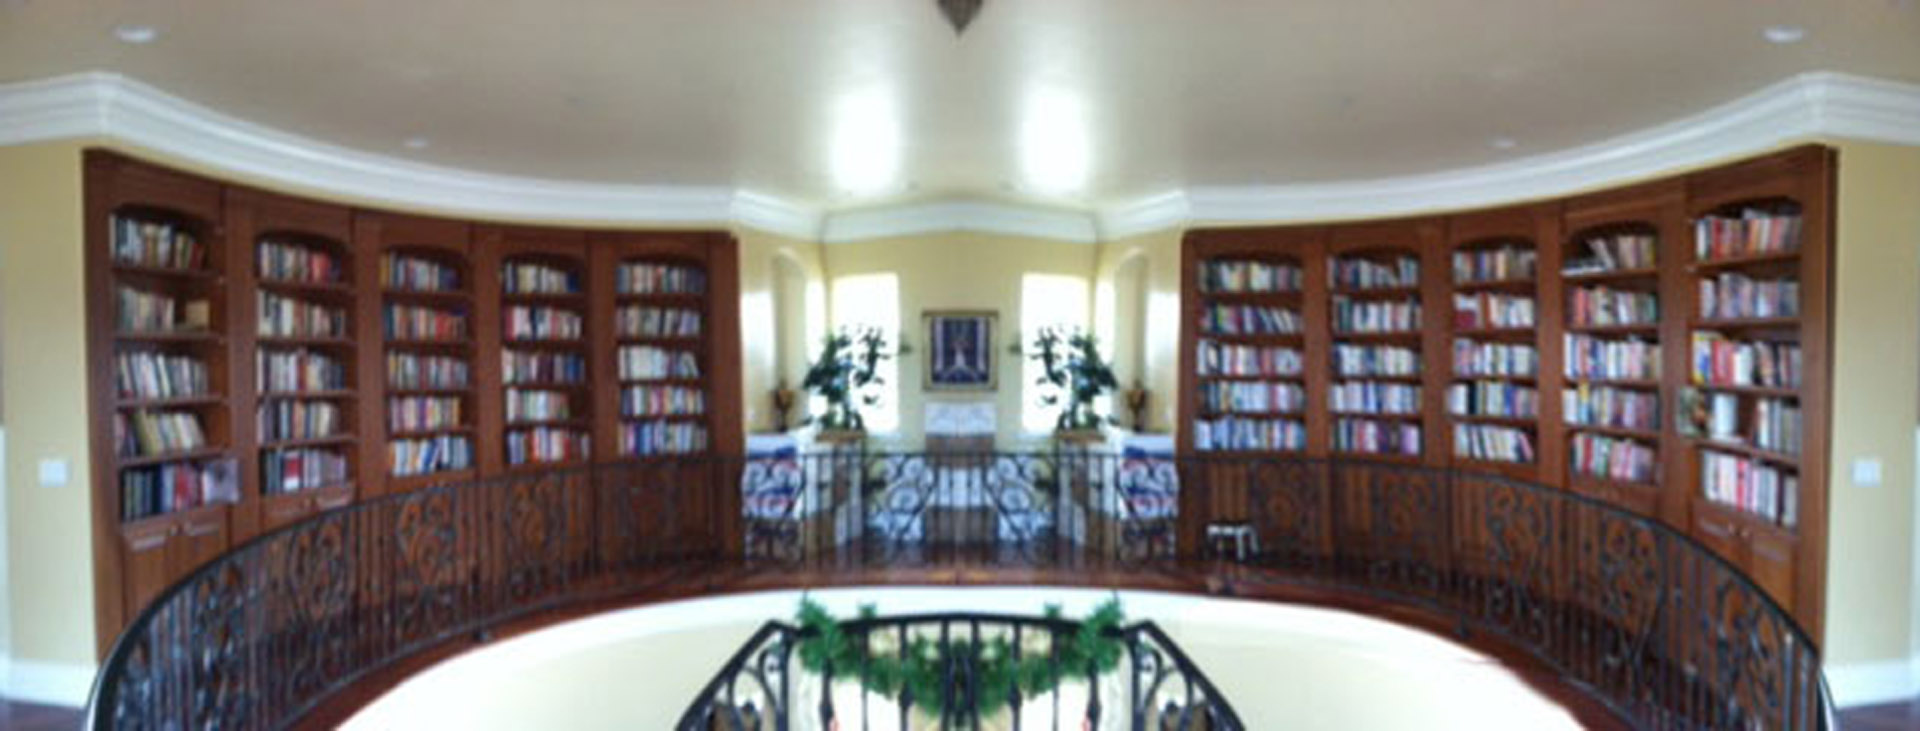 library_2013B